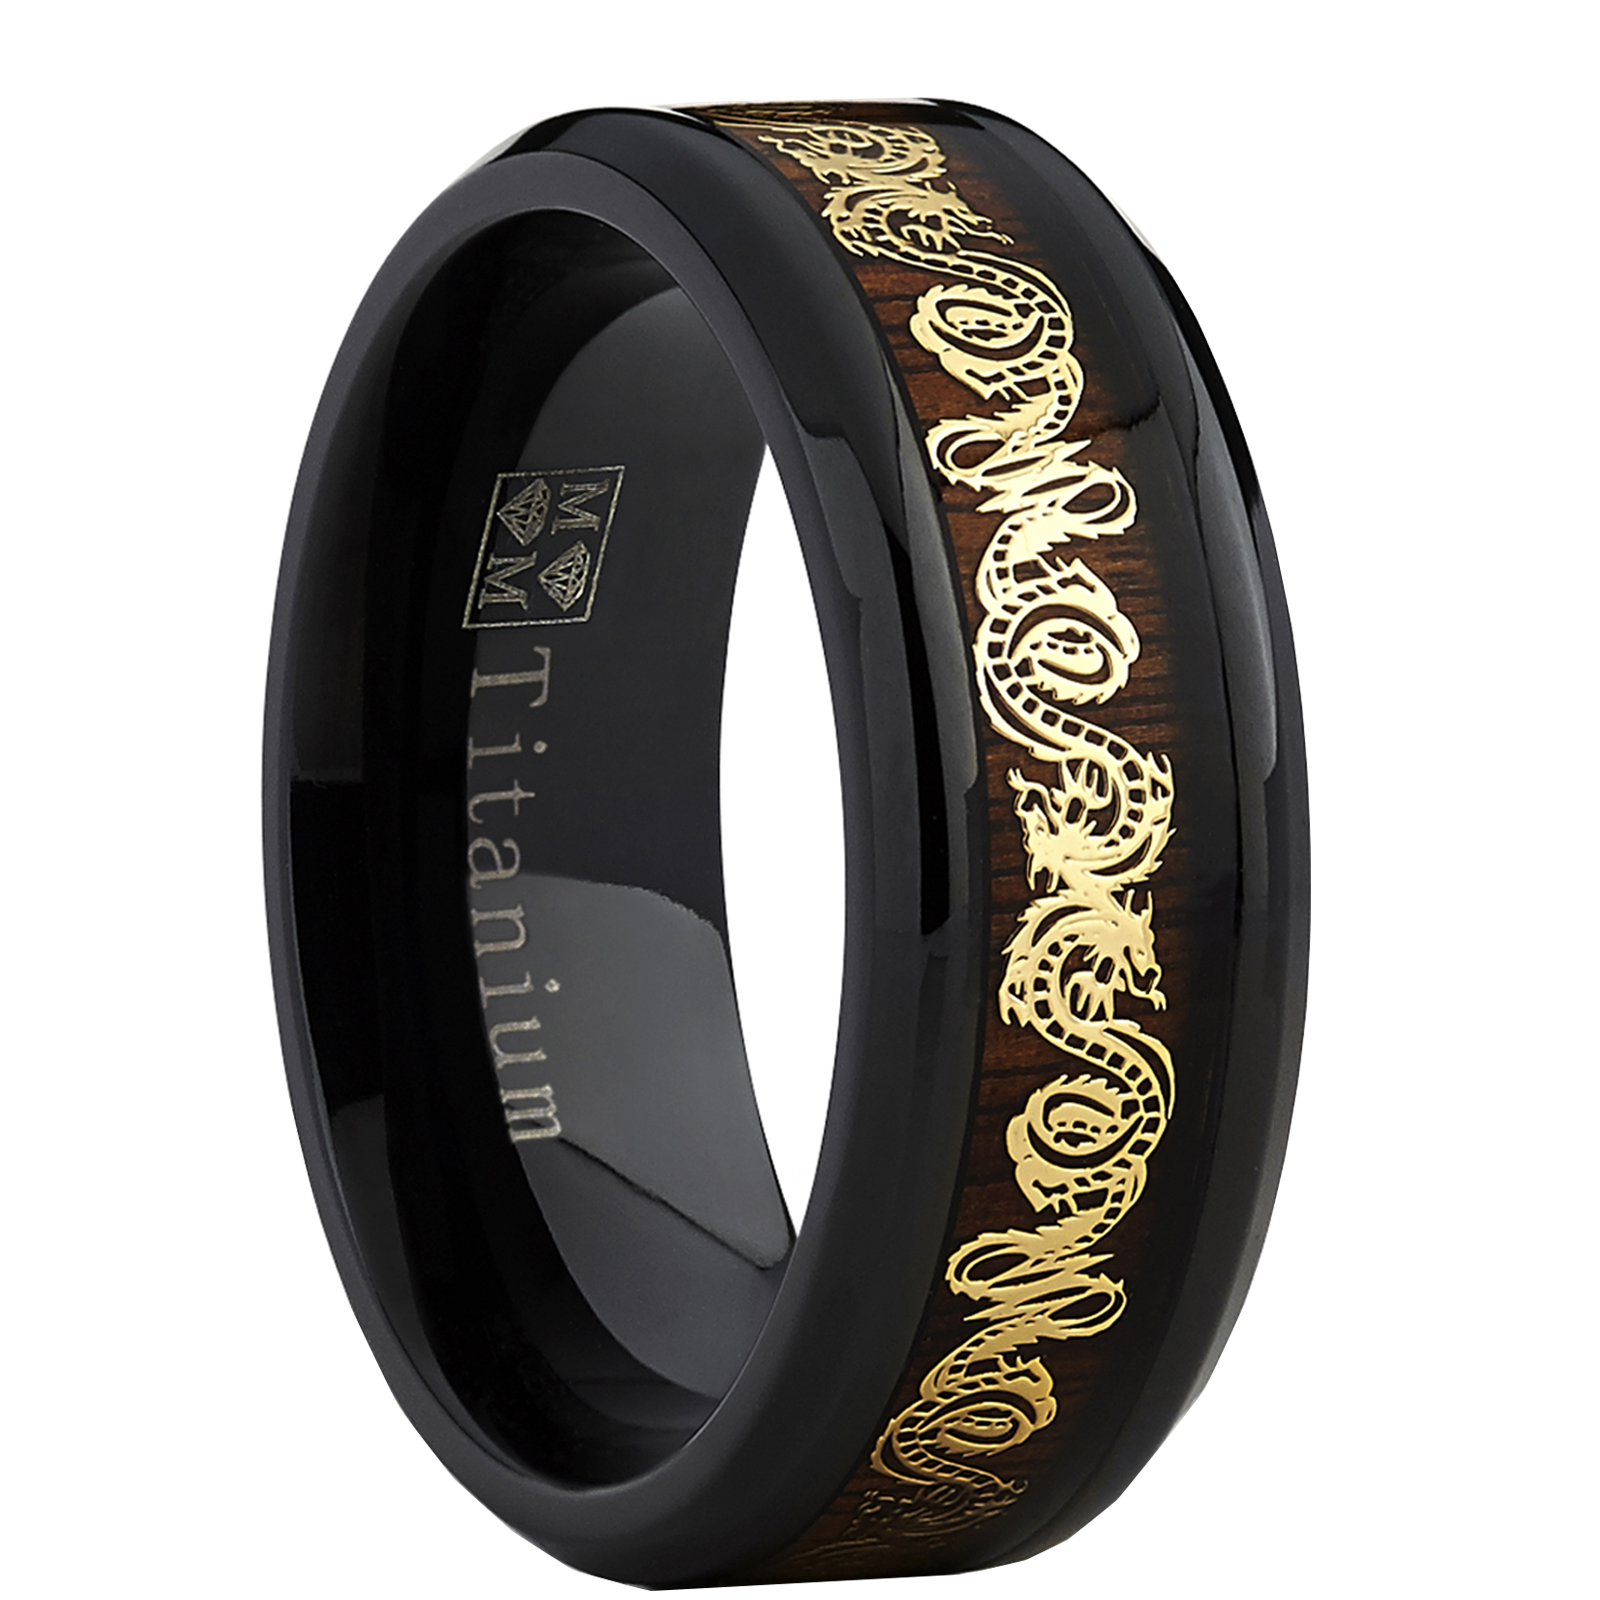 Men's Black Titanium Wedding Band Ring With Goldtone Dragon Inlay Over Real Wood